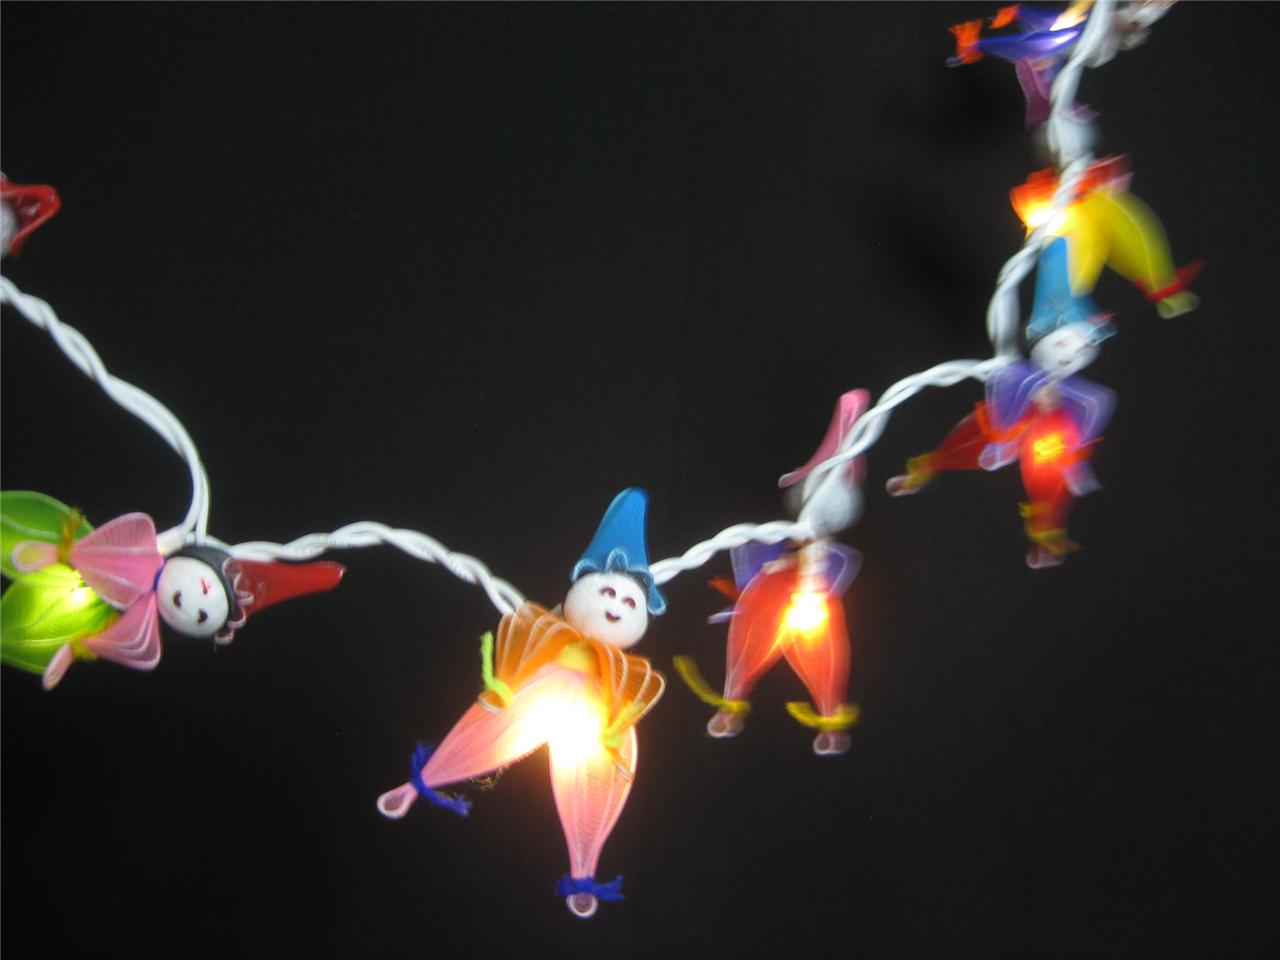 CHILDRENS DOLLS COLOURFUL NIGHT LIGHT LED STRING FAIRY LIGHTS Nursery Decoration eBay